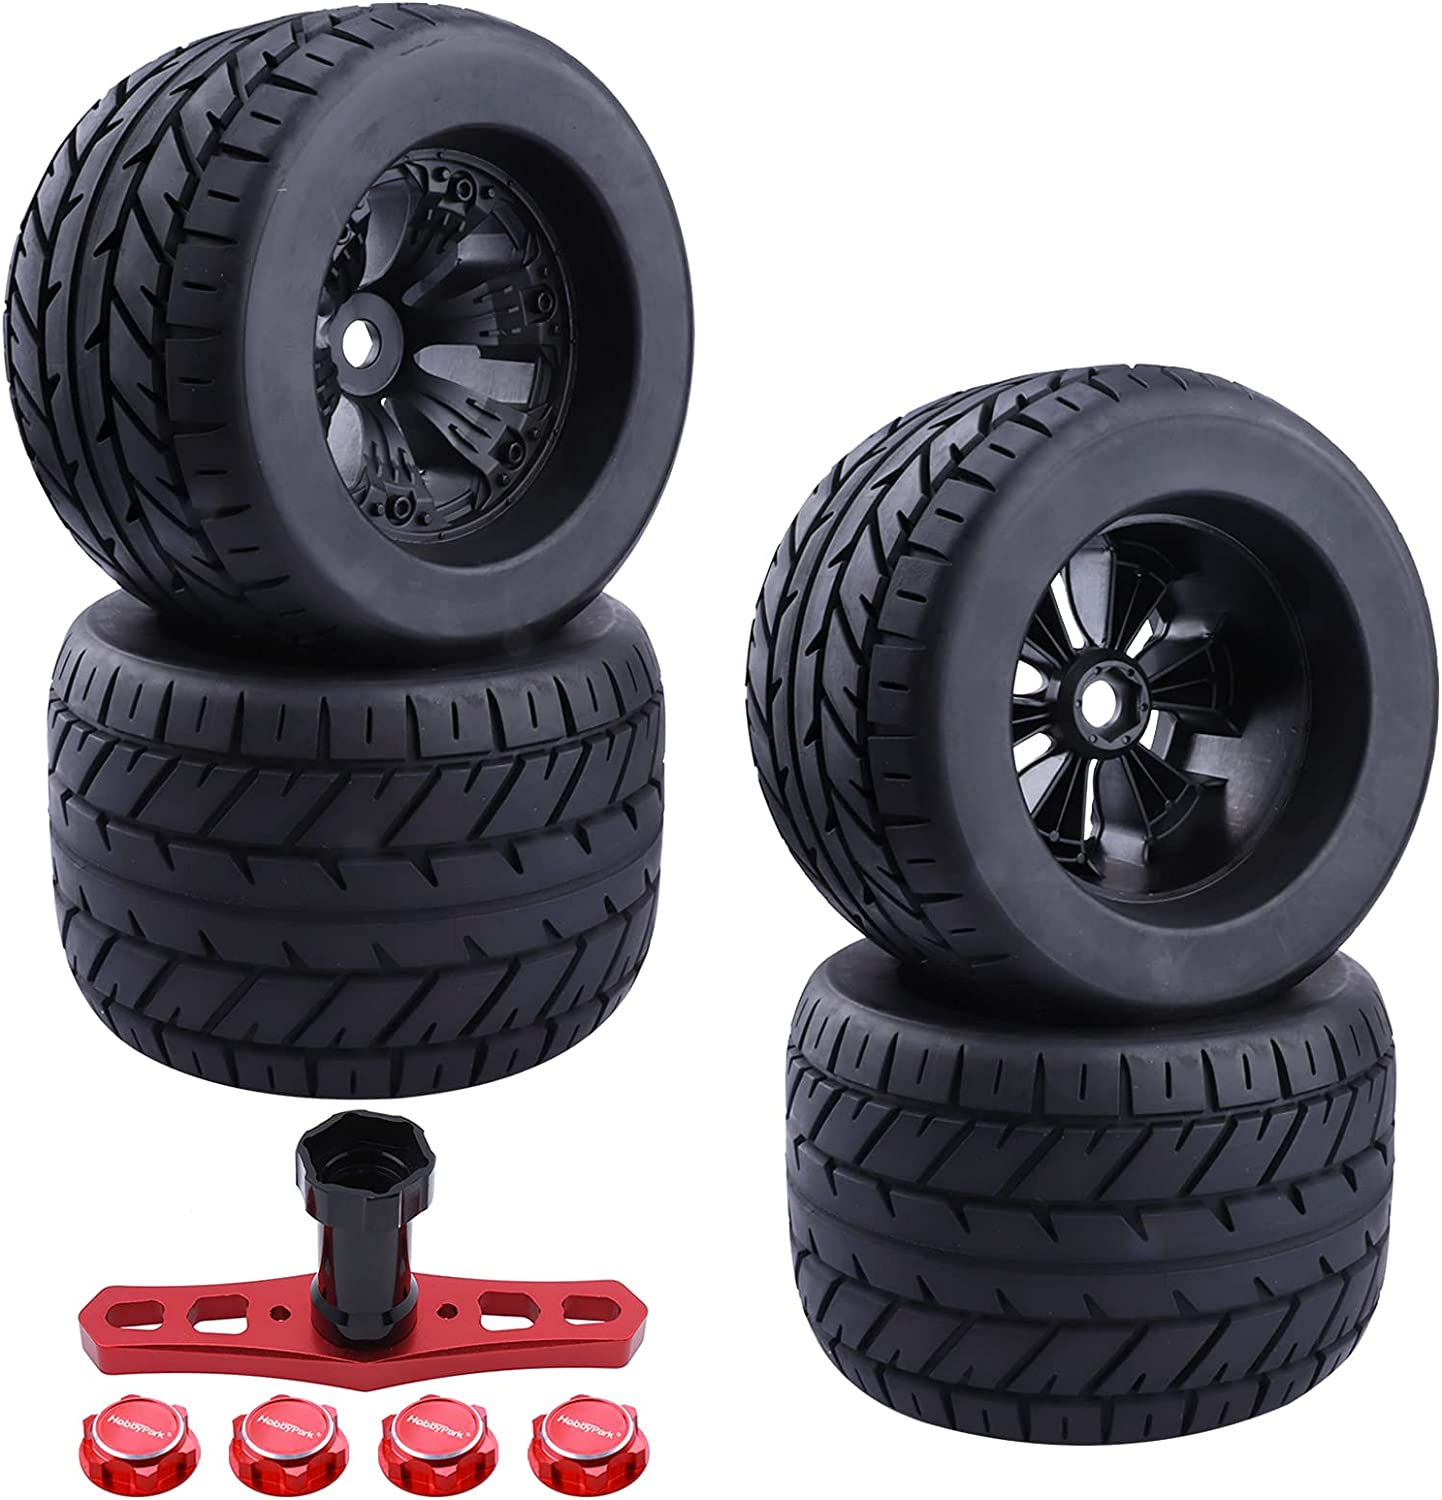 Hobbypark 17mm Hex RC Street Tires and Max 80% OFF for Wheels Scale 1 10 Set famous